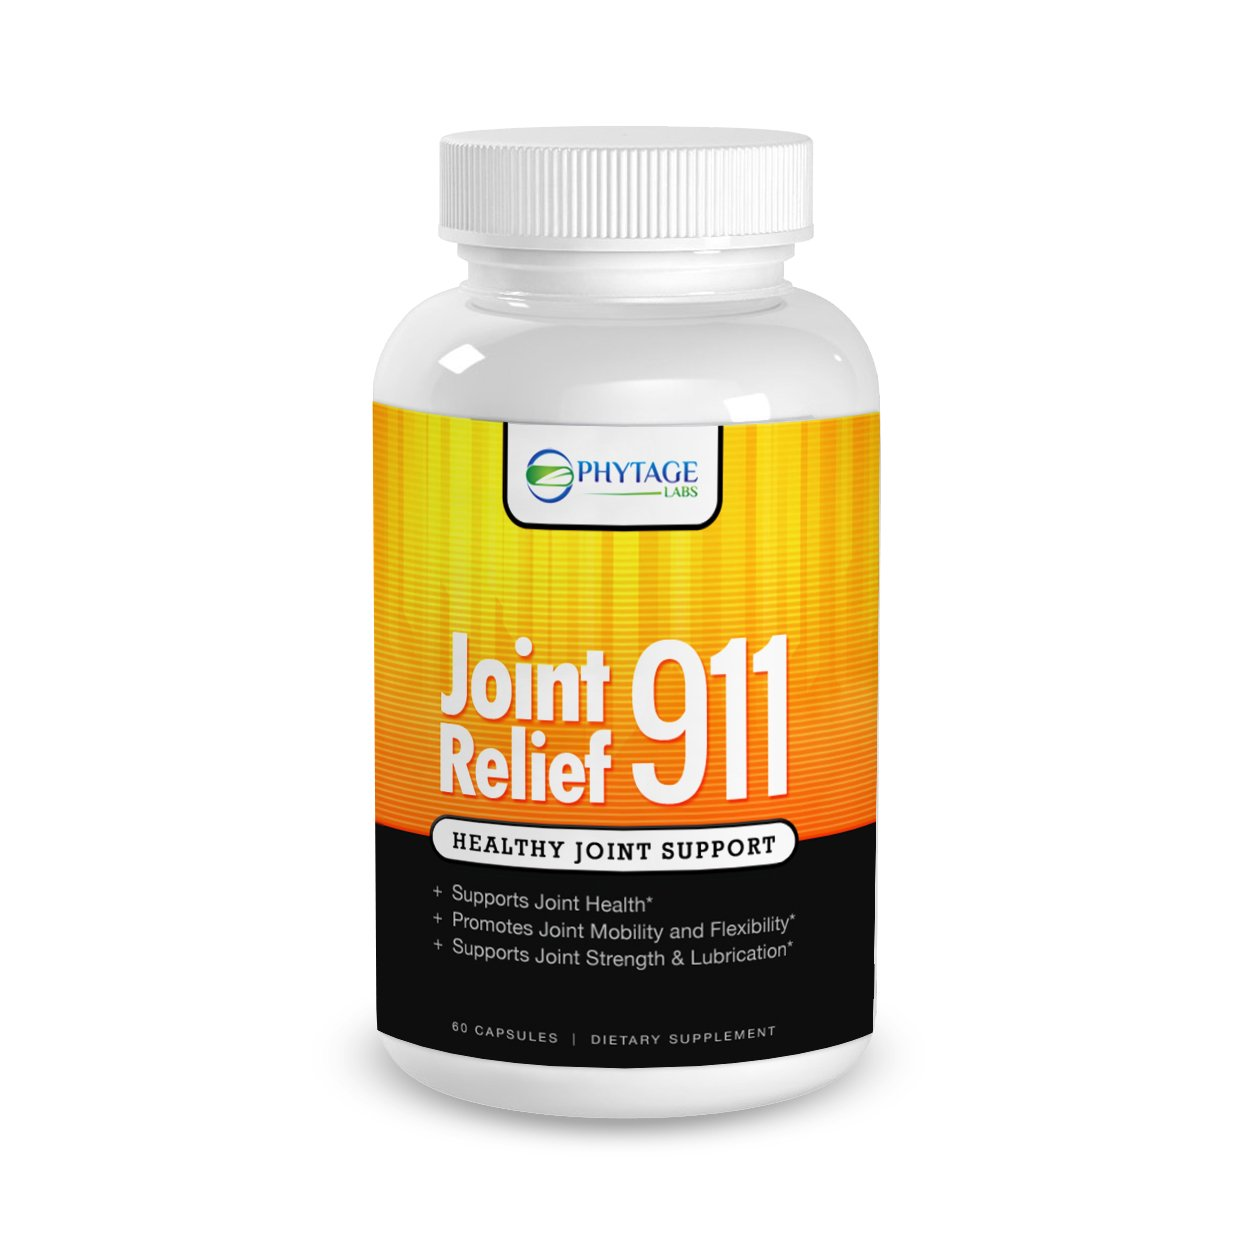 Official Phytage Labs Joint Relief 911 - Joint Pain Relief Health Supplement with Andrographis Paniculata, Hyaluronic Acid - 60 Capsules